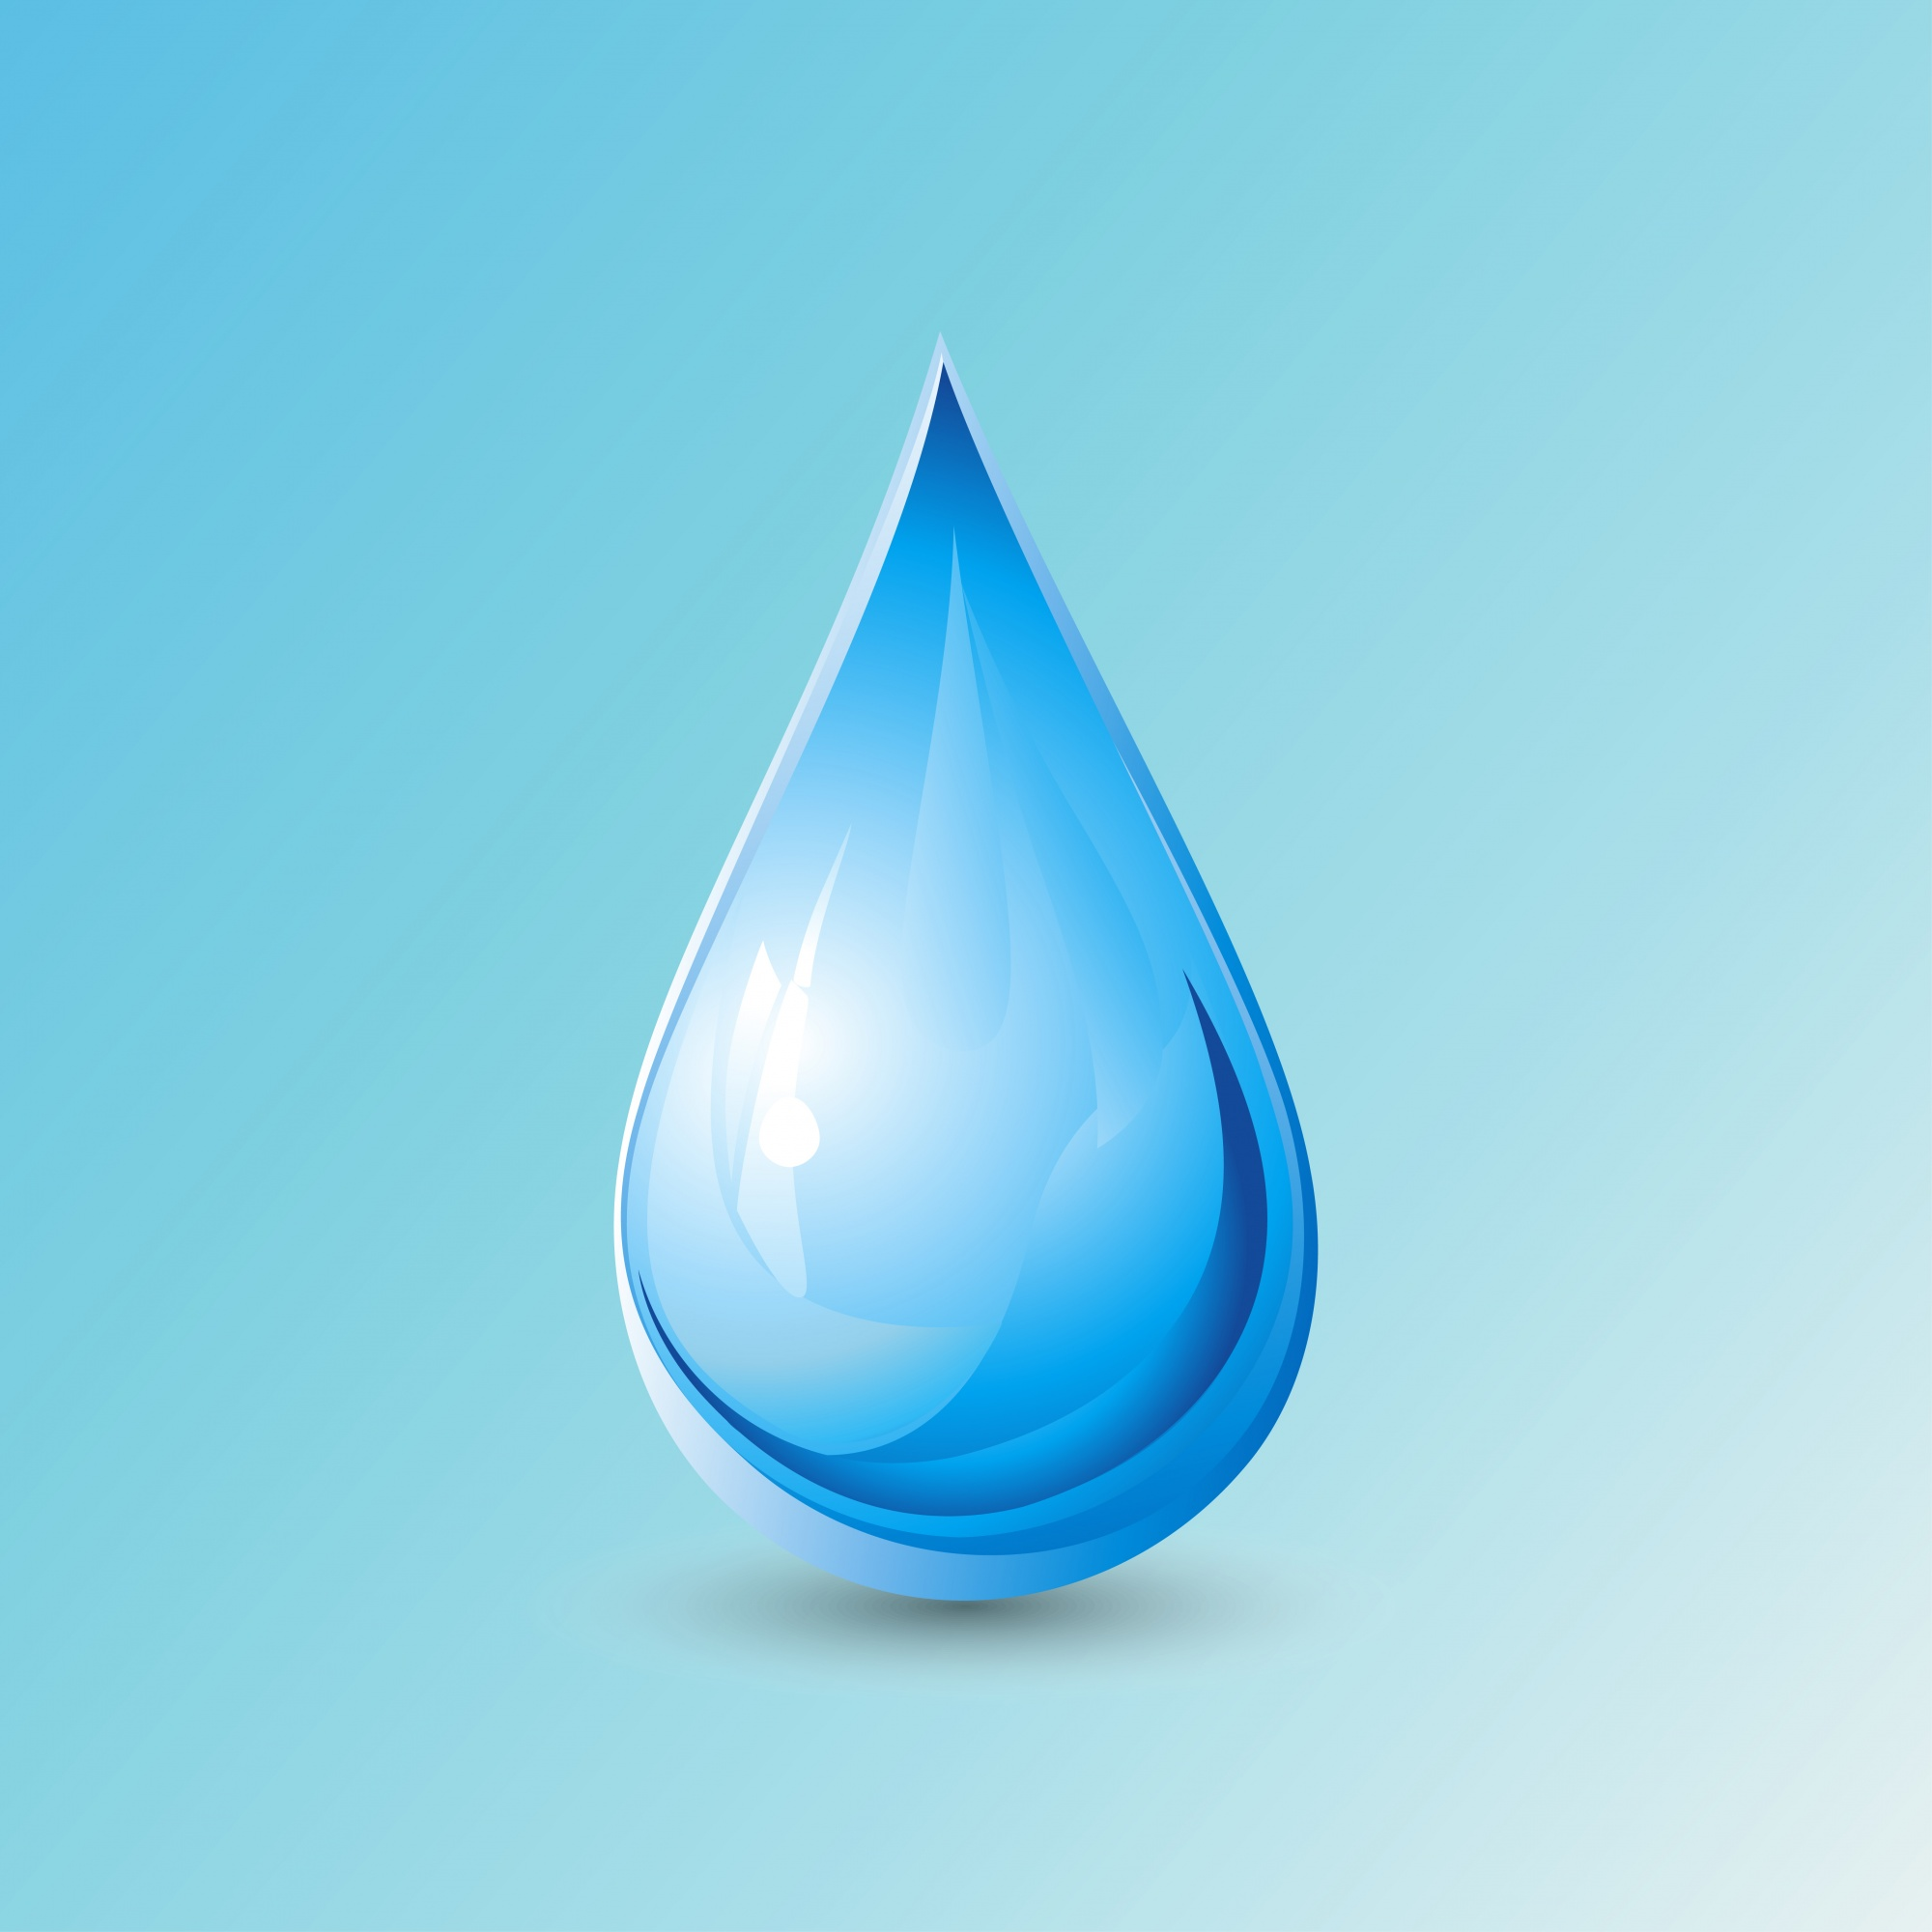 Drop on blue background, world water day